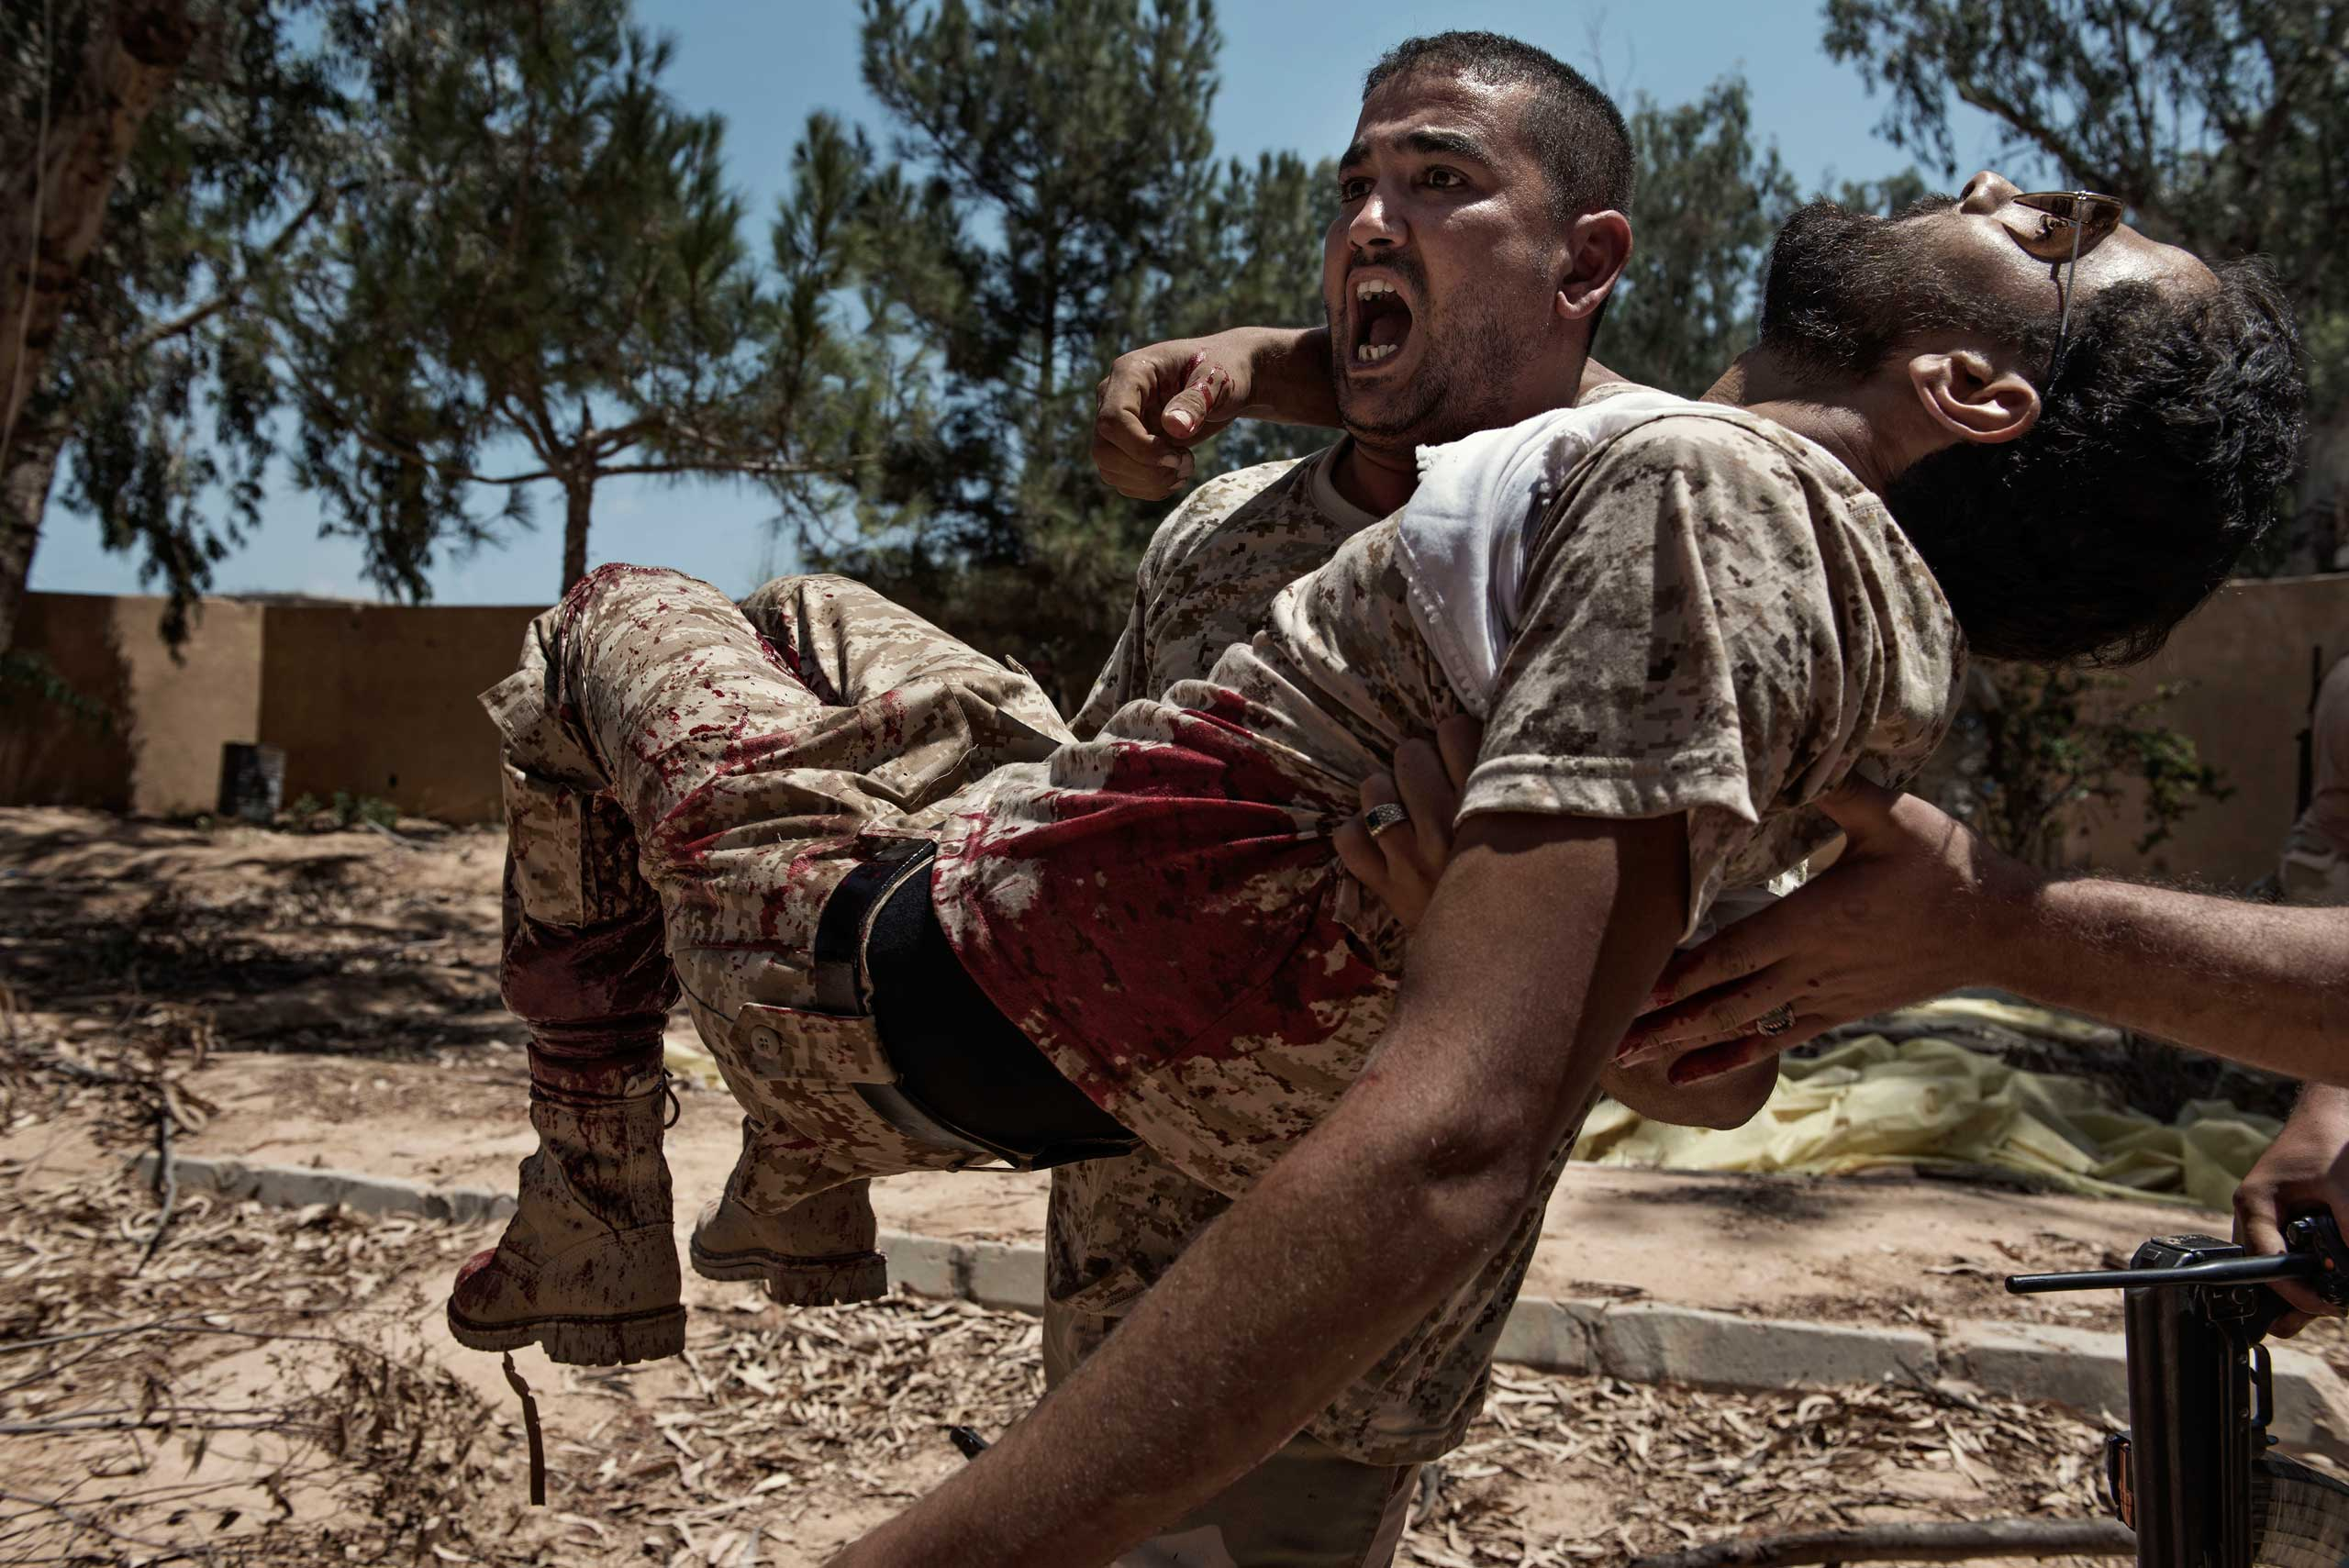 A fighter of the Libyan forces affiliated to the Tripoli government carries a comrade who was seriously injured just seconds before by a booby trap placed by ISIS fighters on July 14, 2016.